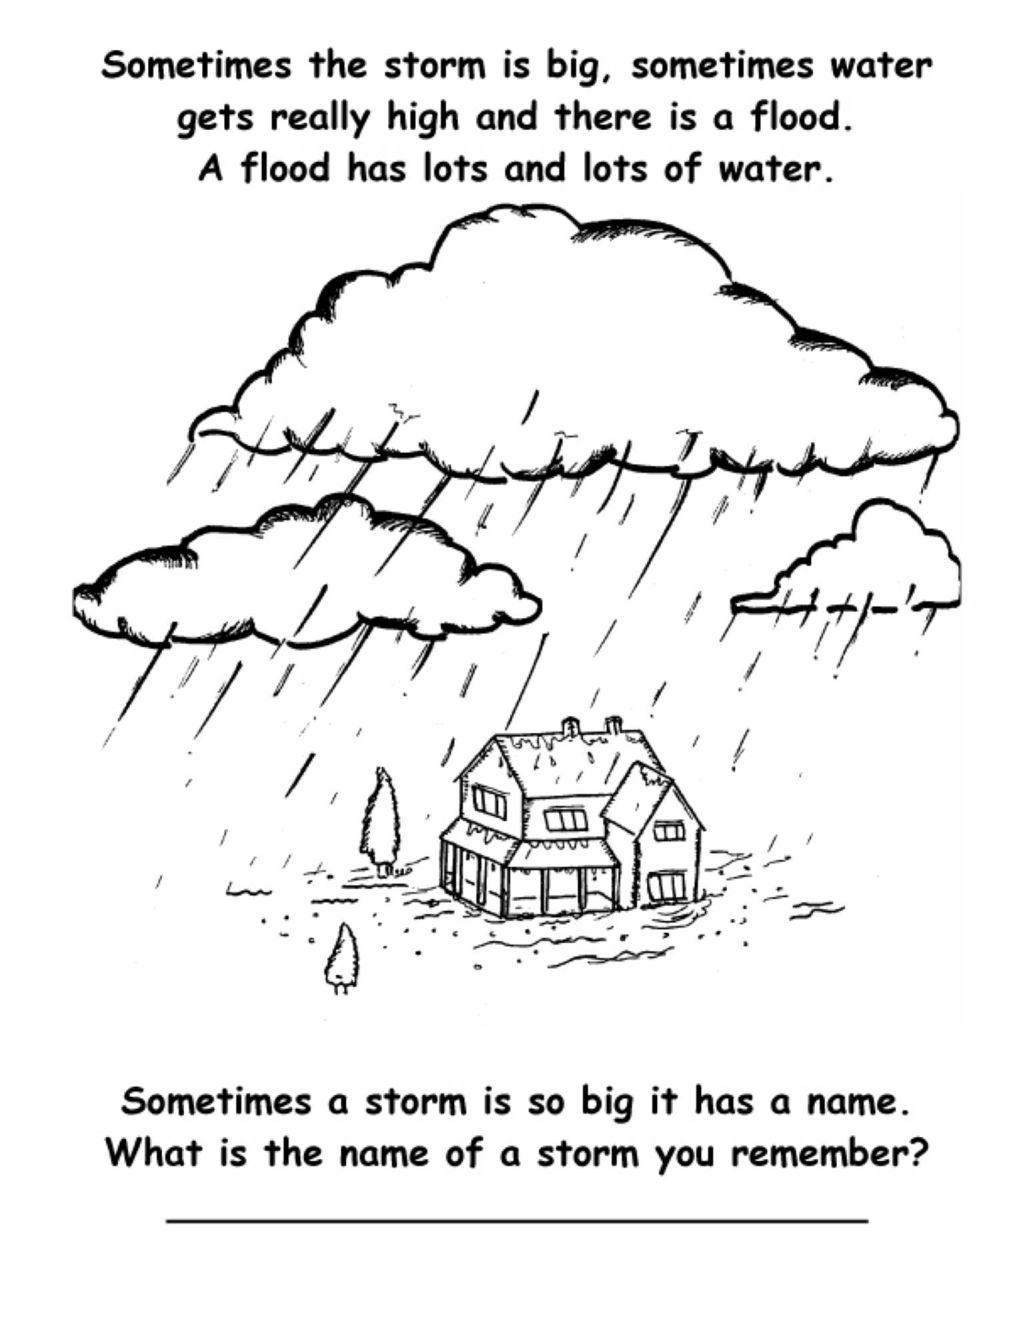 Free Superstorm Sandy Coloring Book Can Help Kids Cope Helping Kids Flood Coloring Books